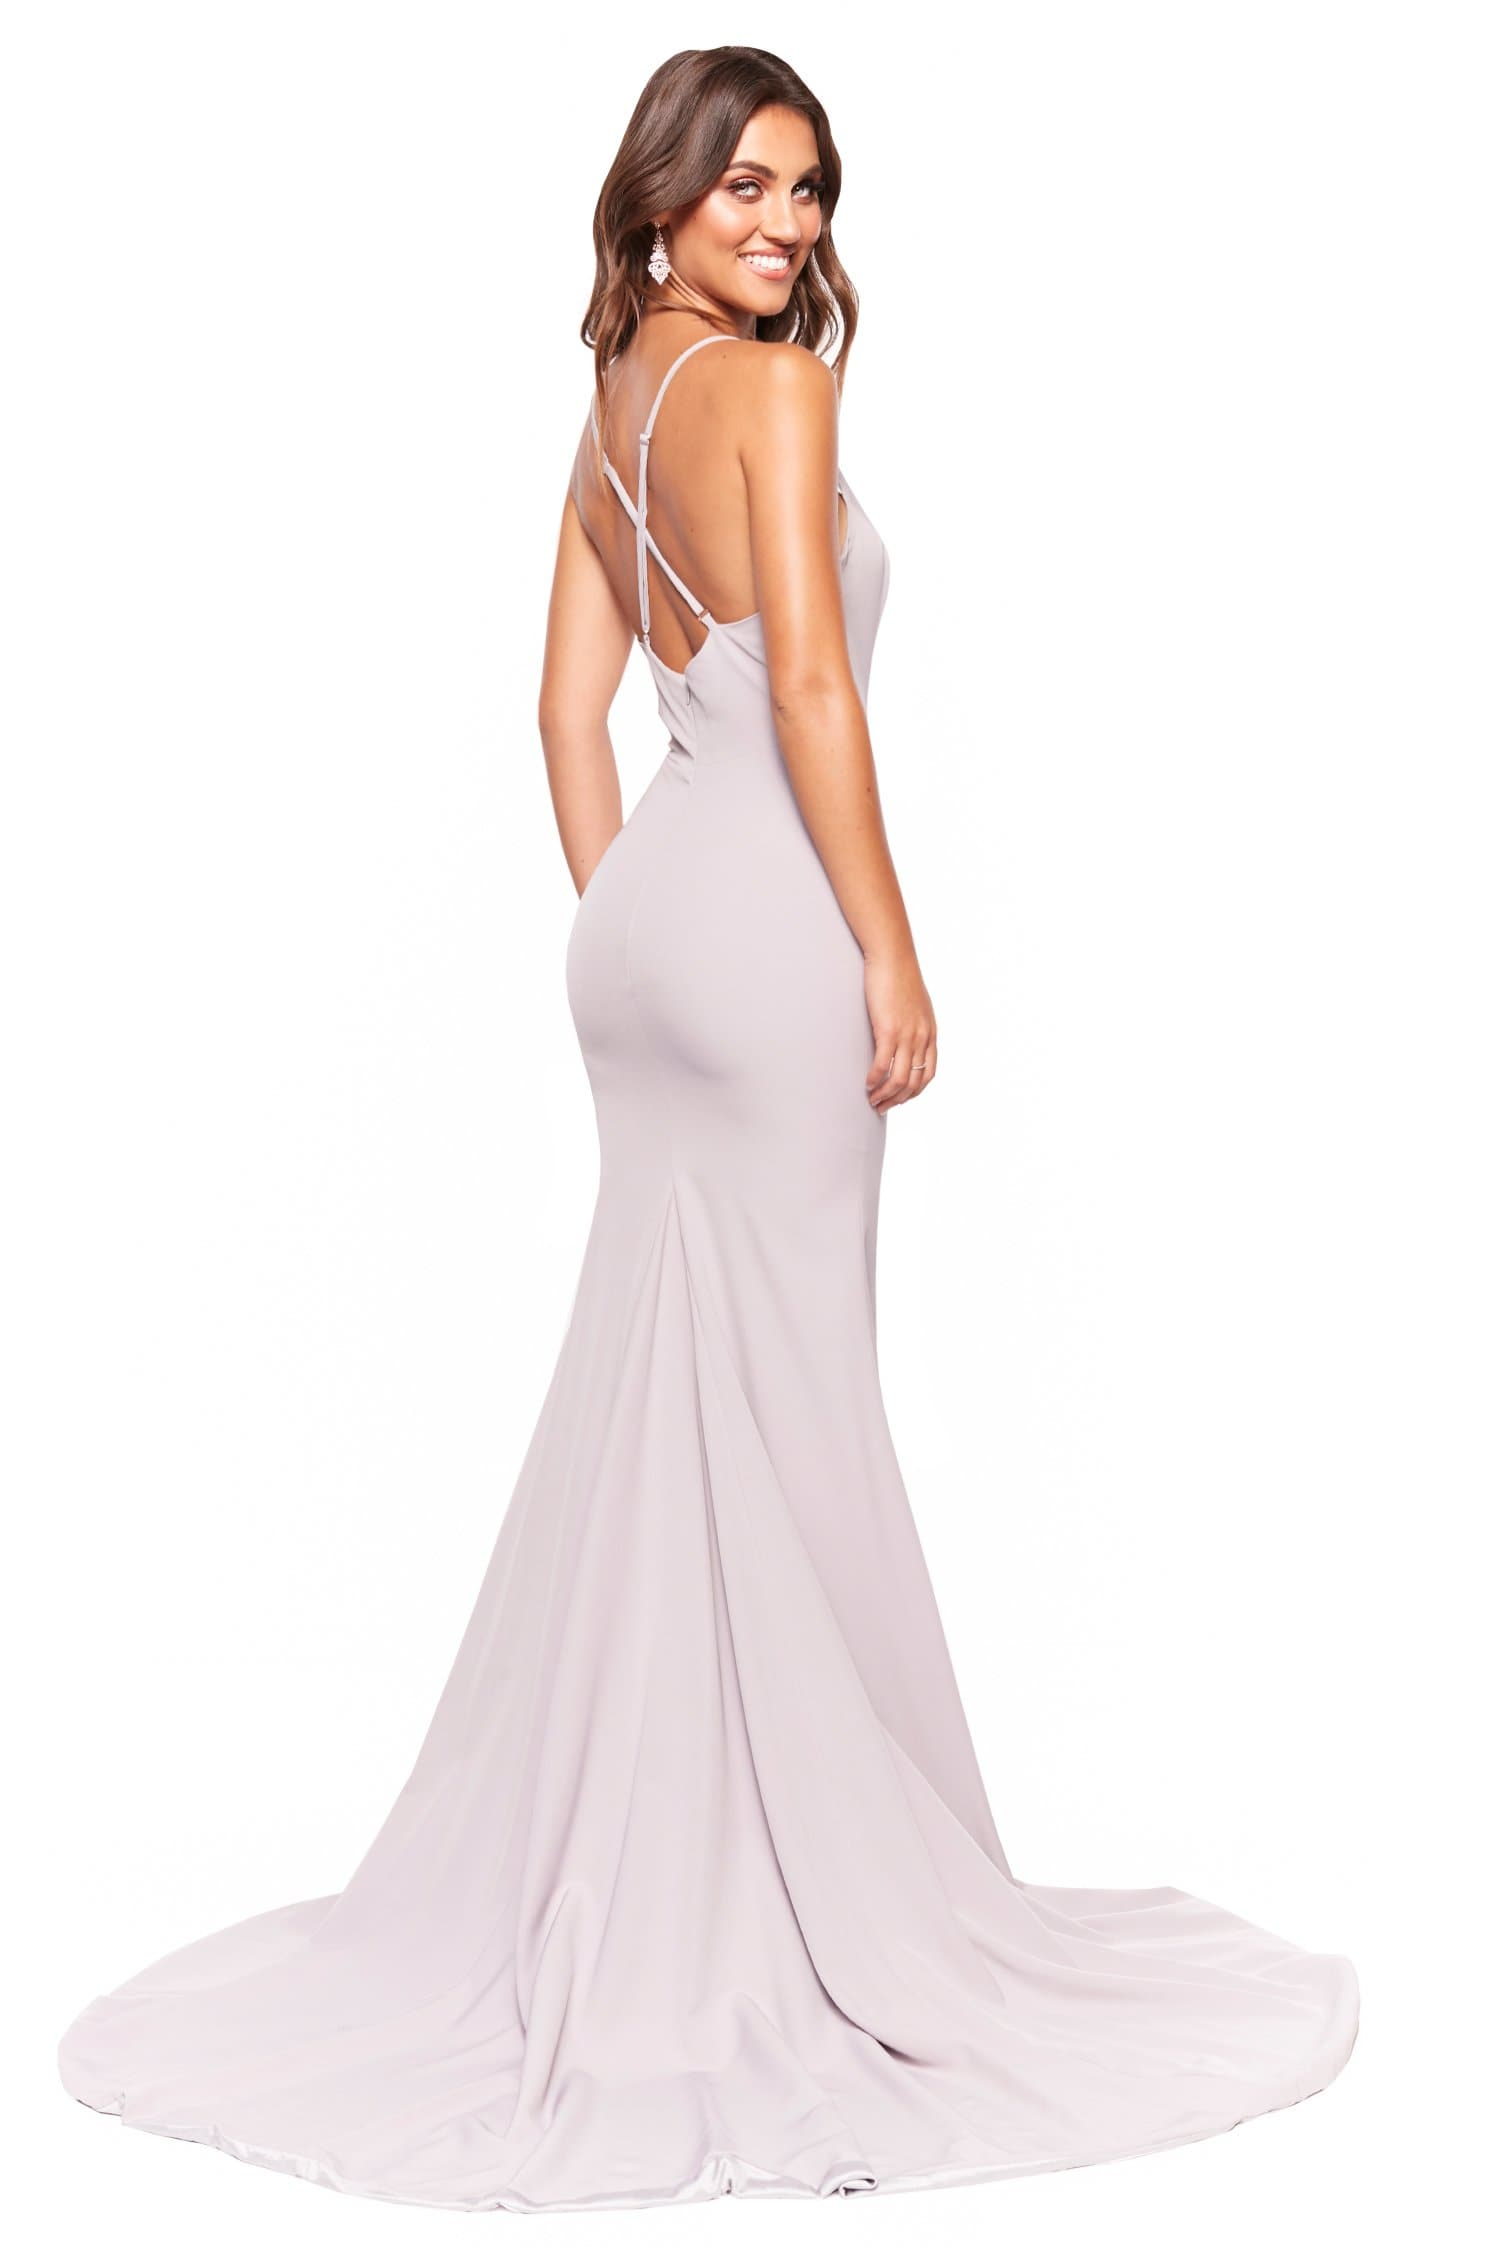 A&N Luxe Celine - Grey Lilac Gown with Plunge Neck & Side Slit